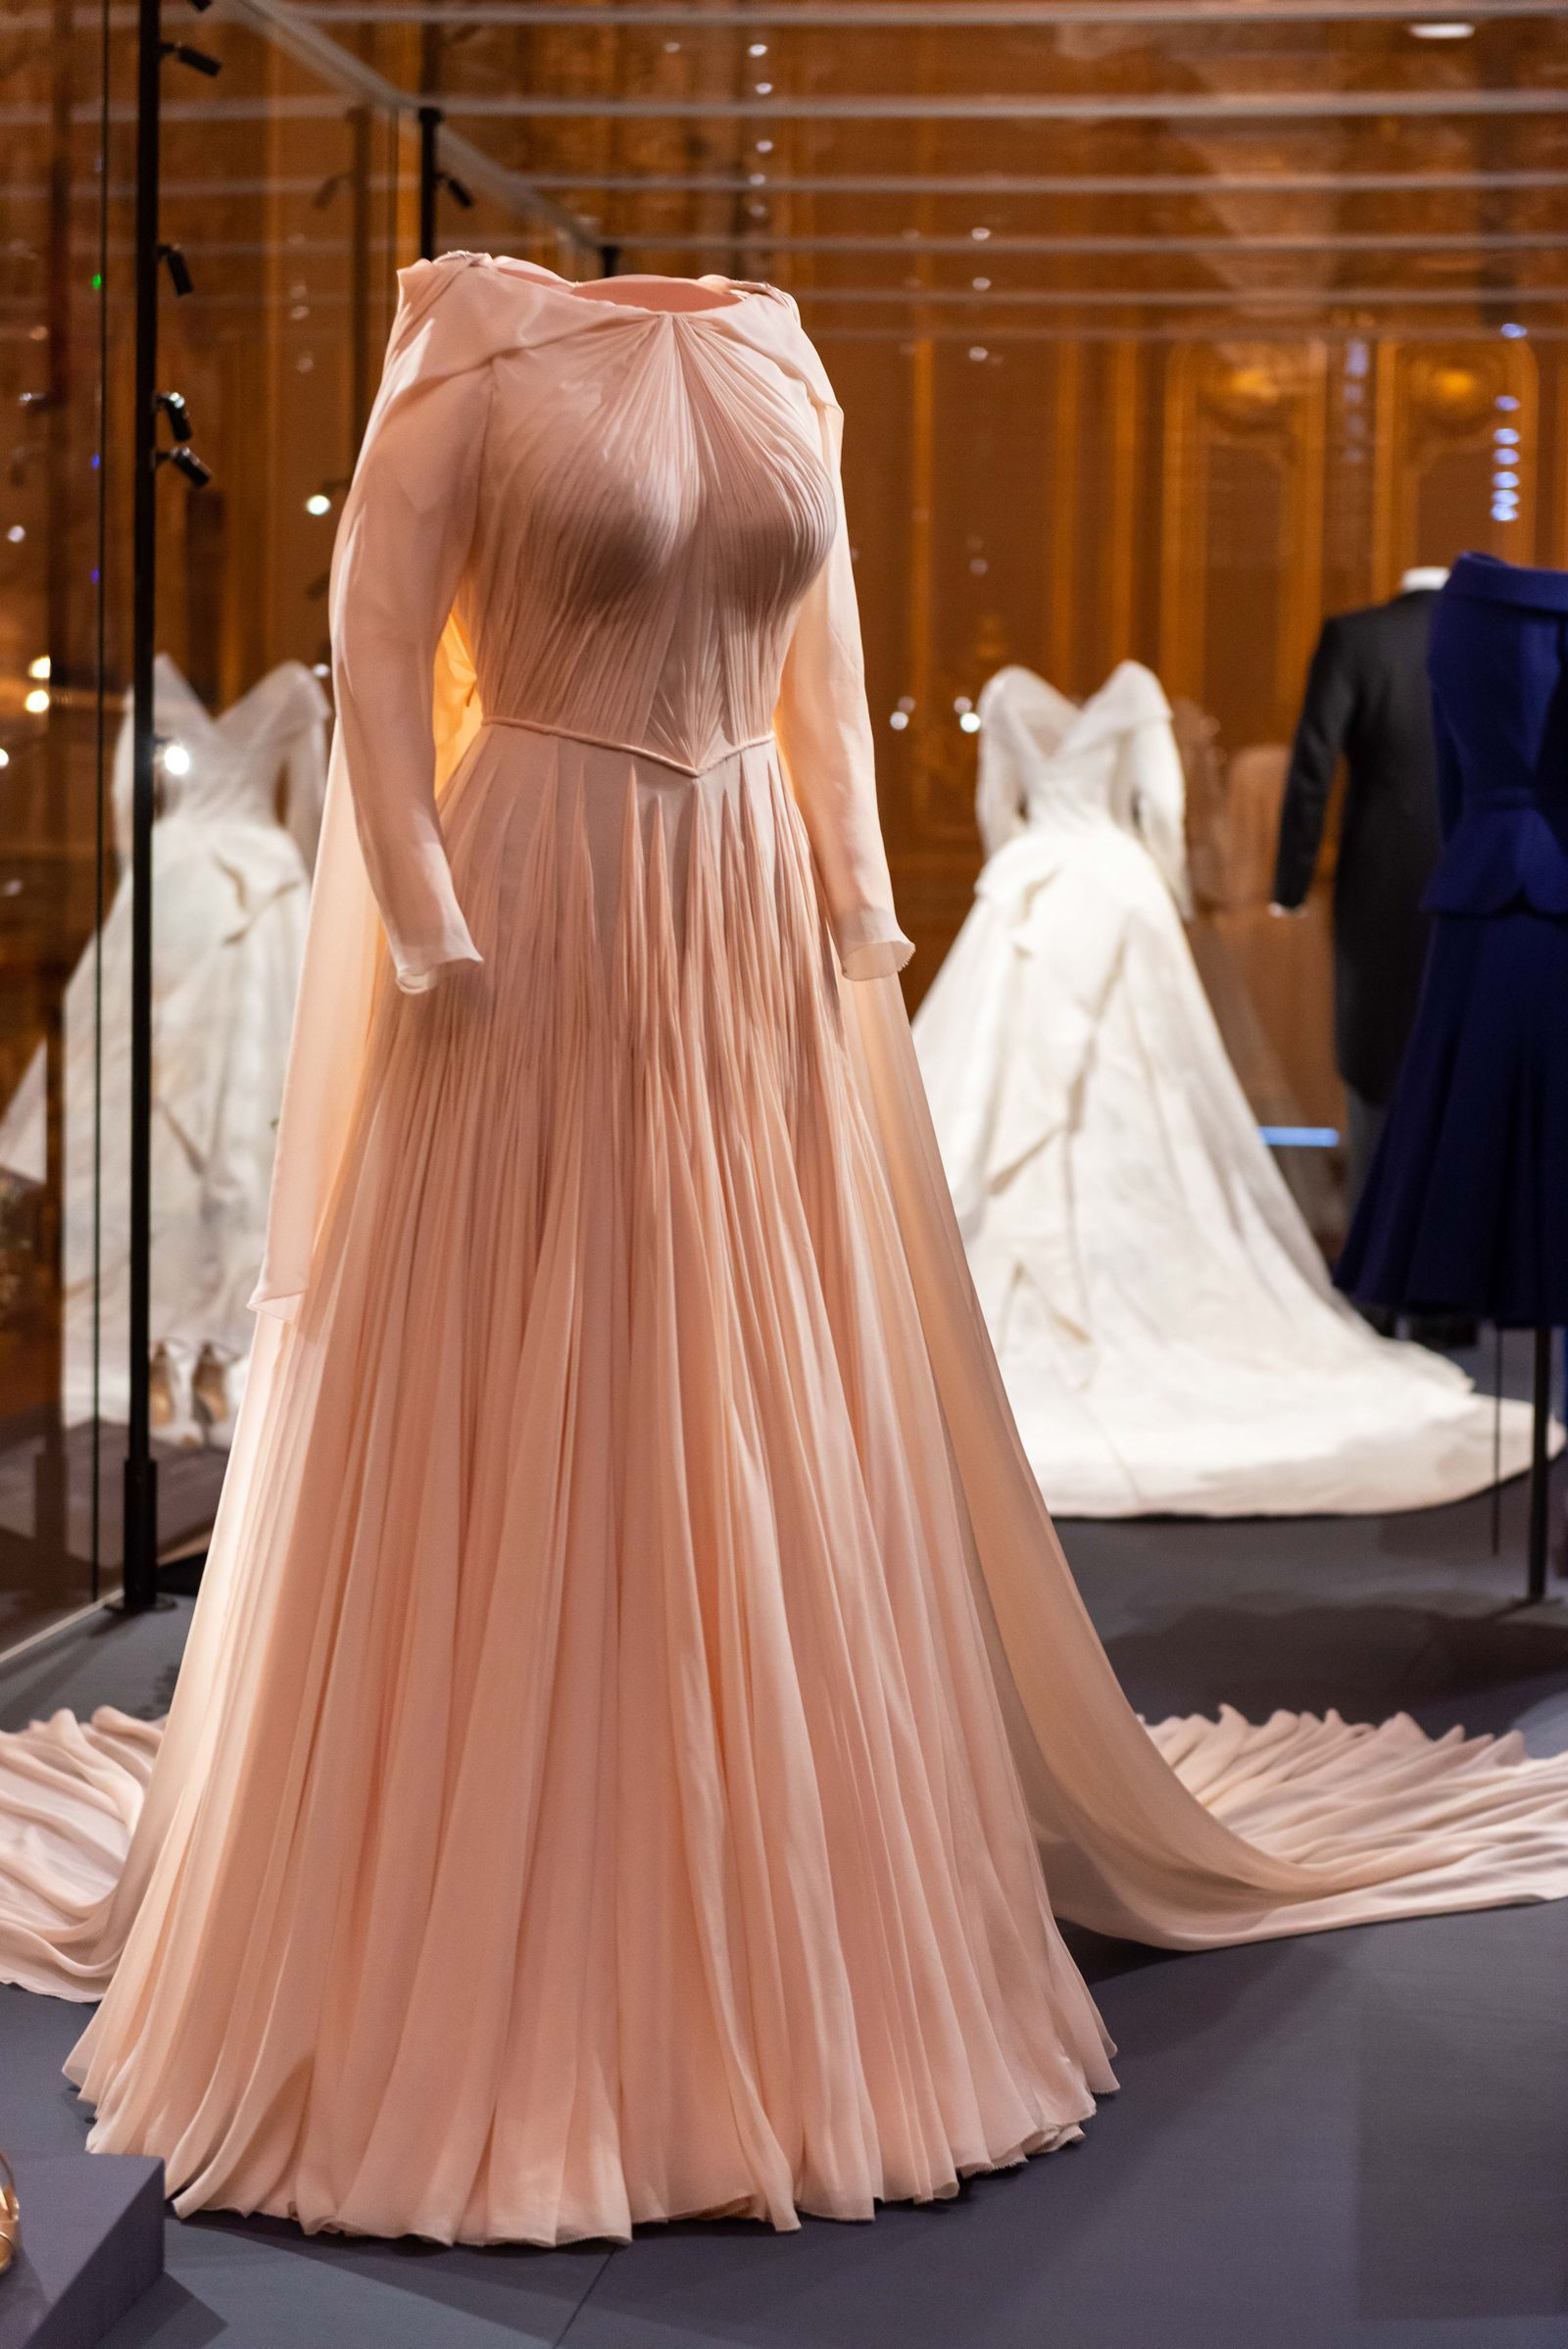 Great News You Can Now See Princess Eugenie S Beautiful Wedding Dress Up Close Second Wedding Dresses Royal Wedding Dress Eugenie Wedding